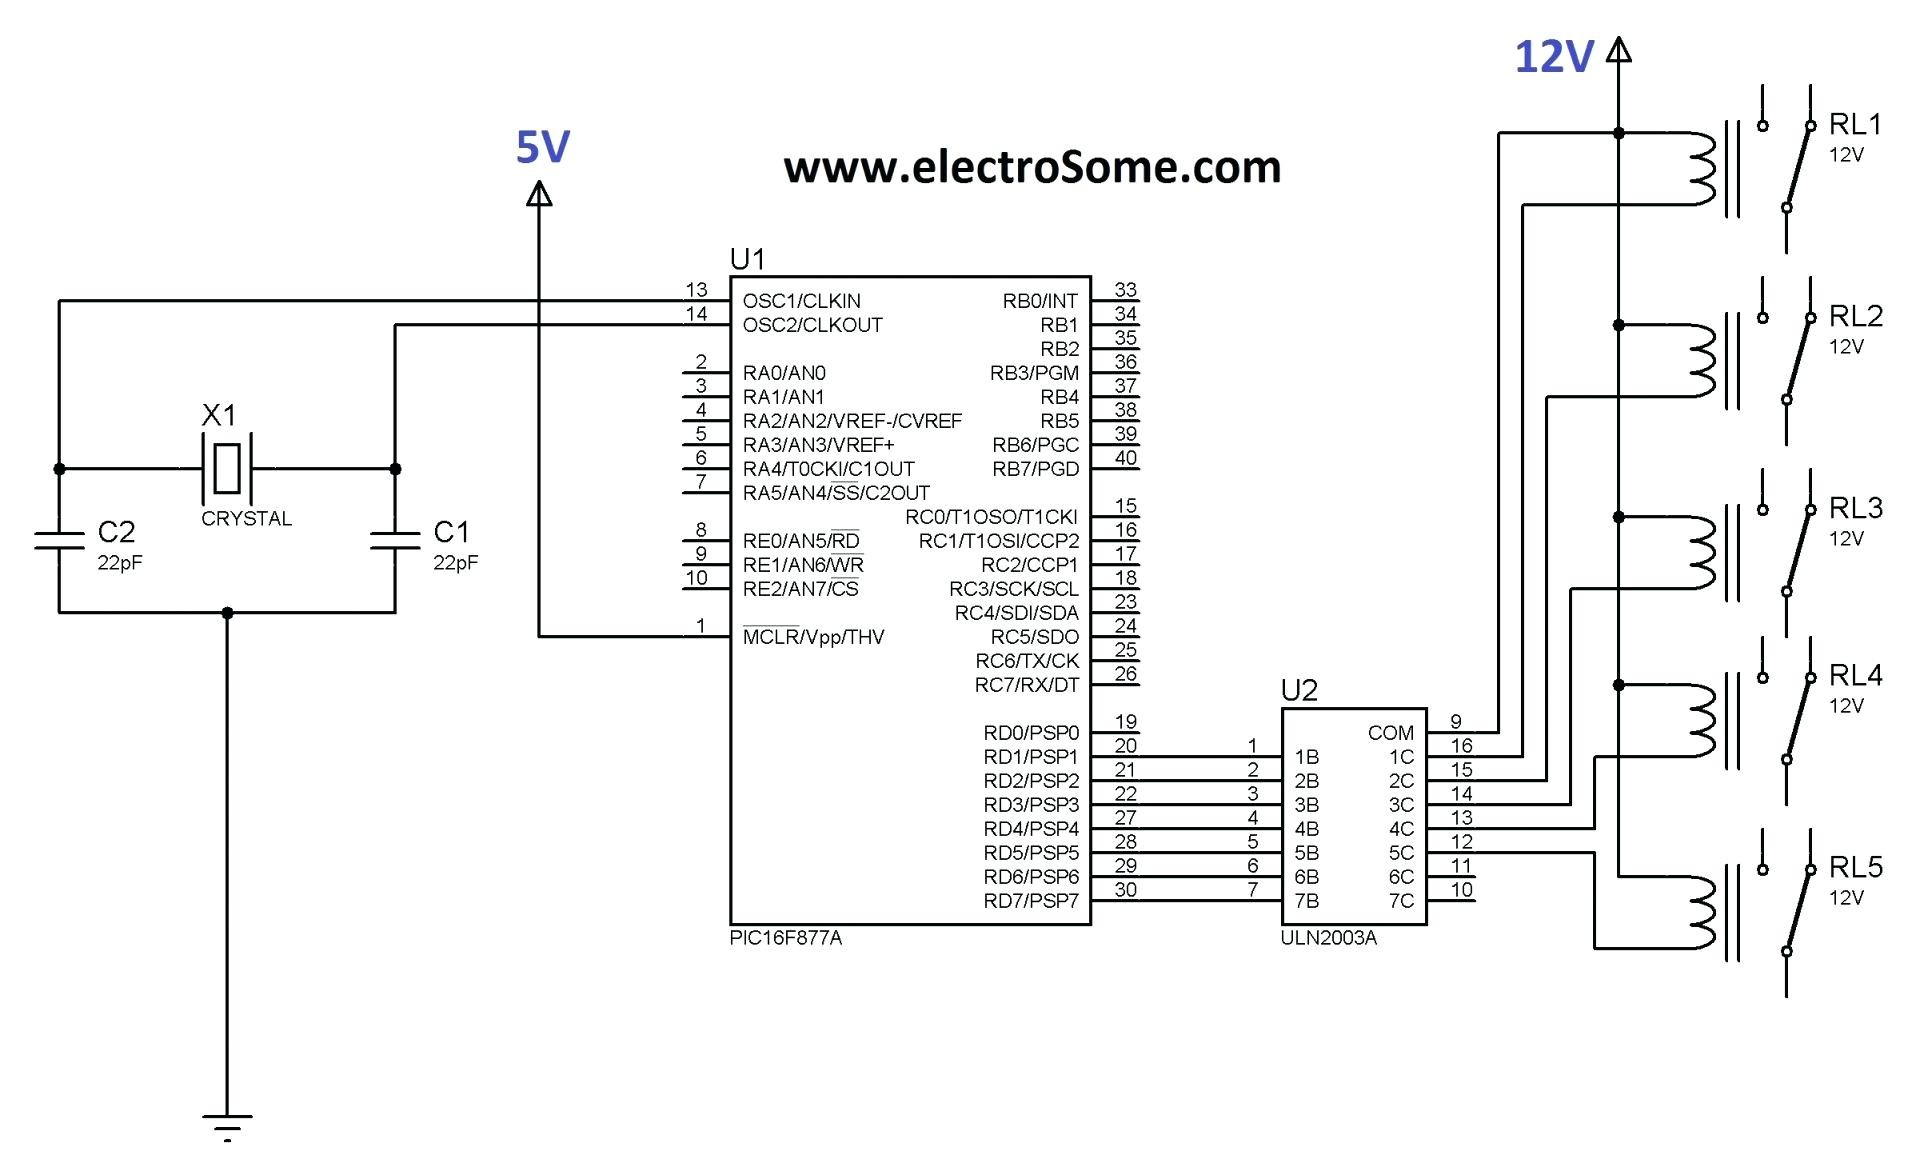 Hvac Fan Relay Wiring Diagram Symbols Aircraft Schematic I Just Purchased A